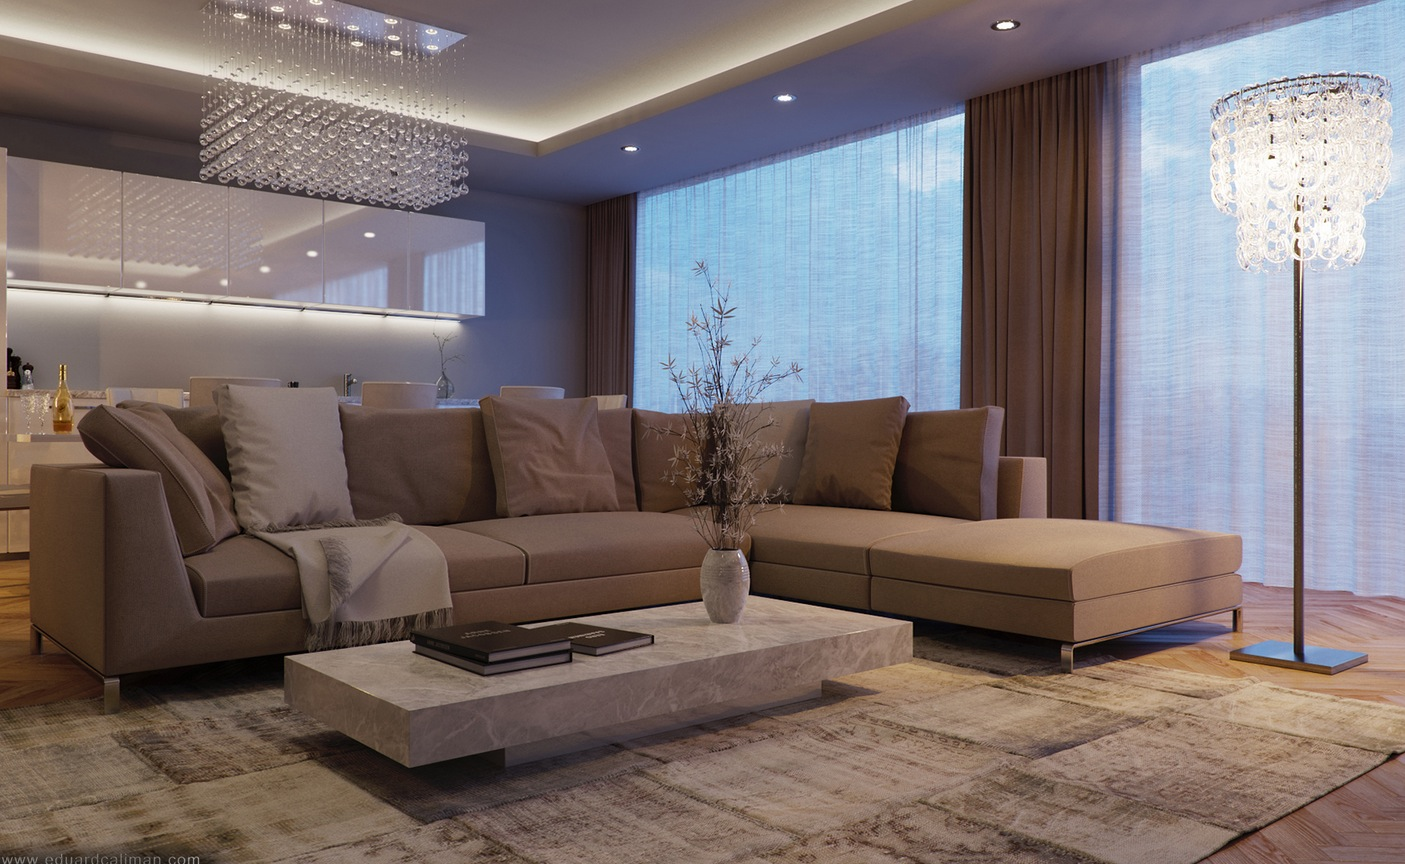 Taupe sofa interior design ideas - Decoration salon taupe ...